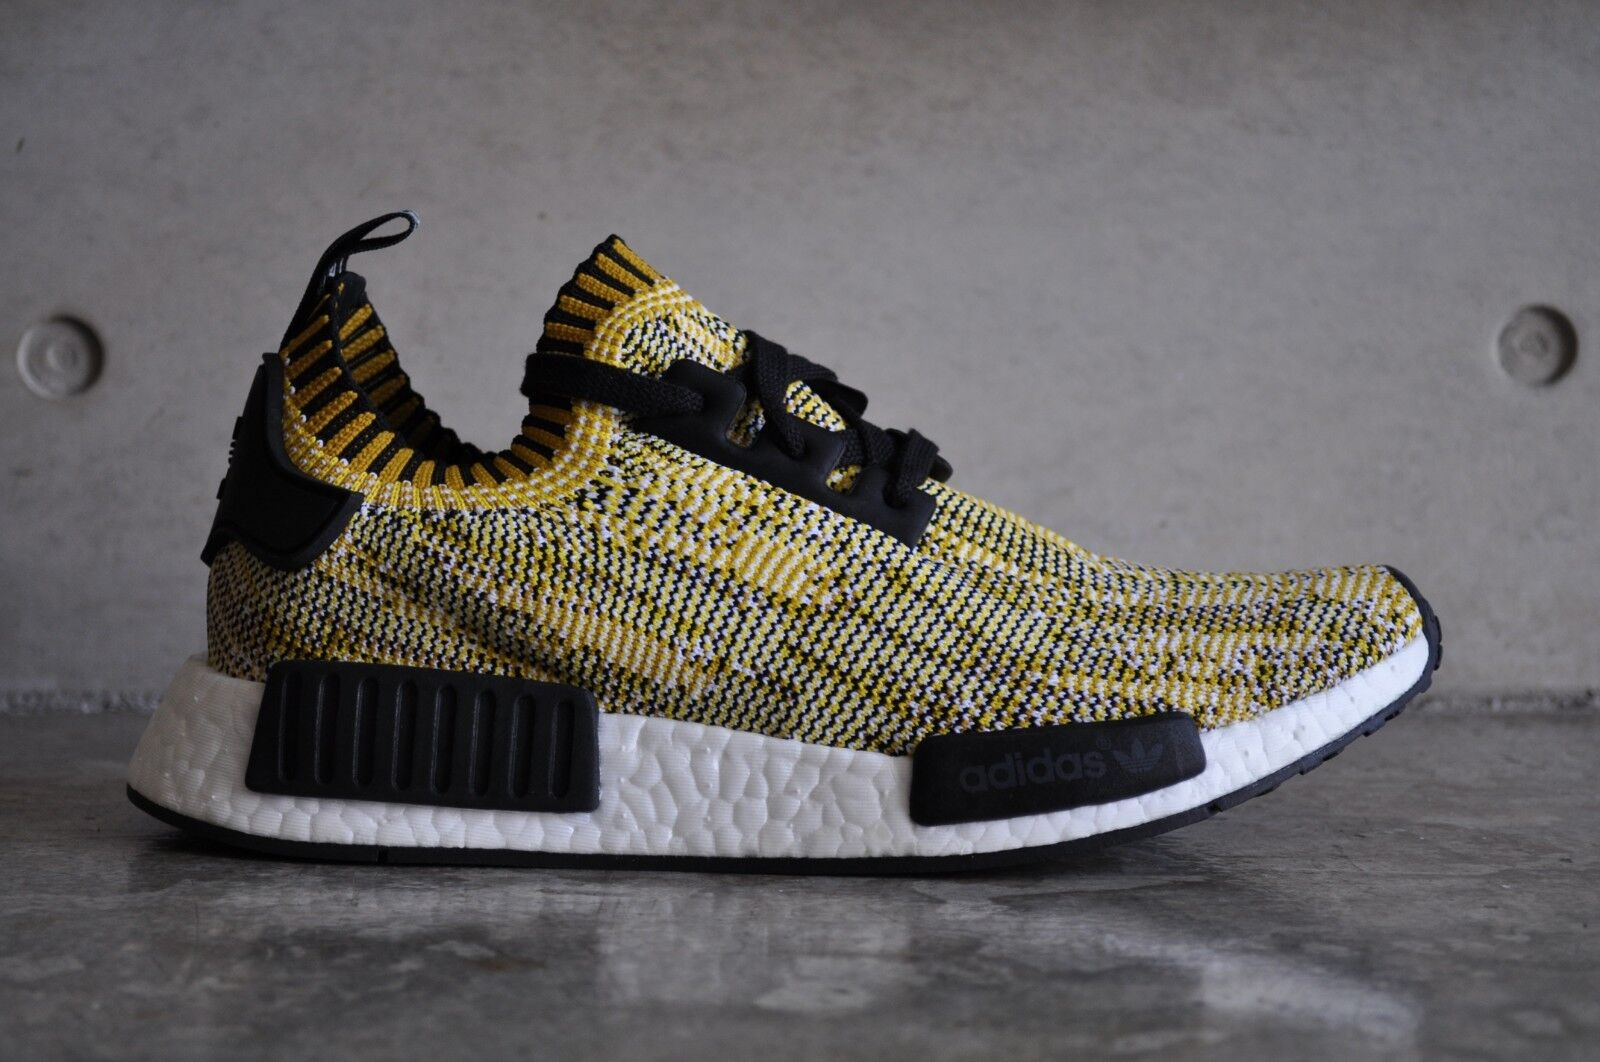 promo code 36e47 6288d Details about Adidas NMD R1 Primeknit Yellow Black 7 UK 40 2 3 EUR 7.5 US